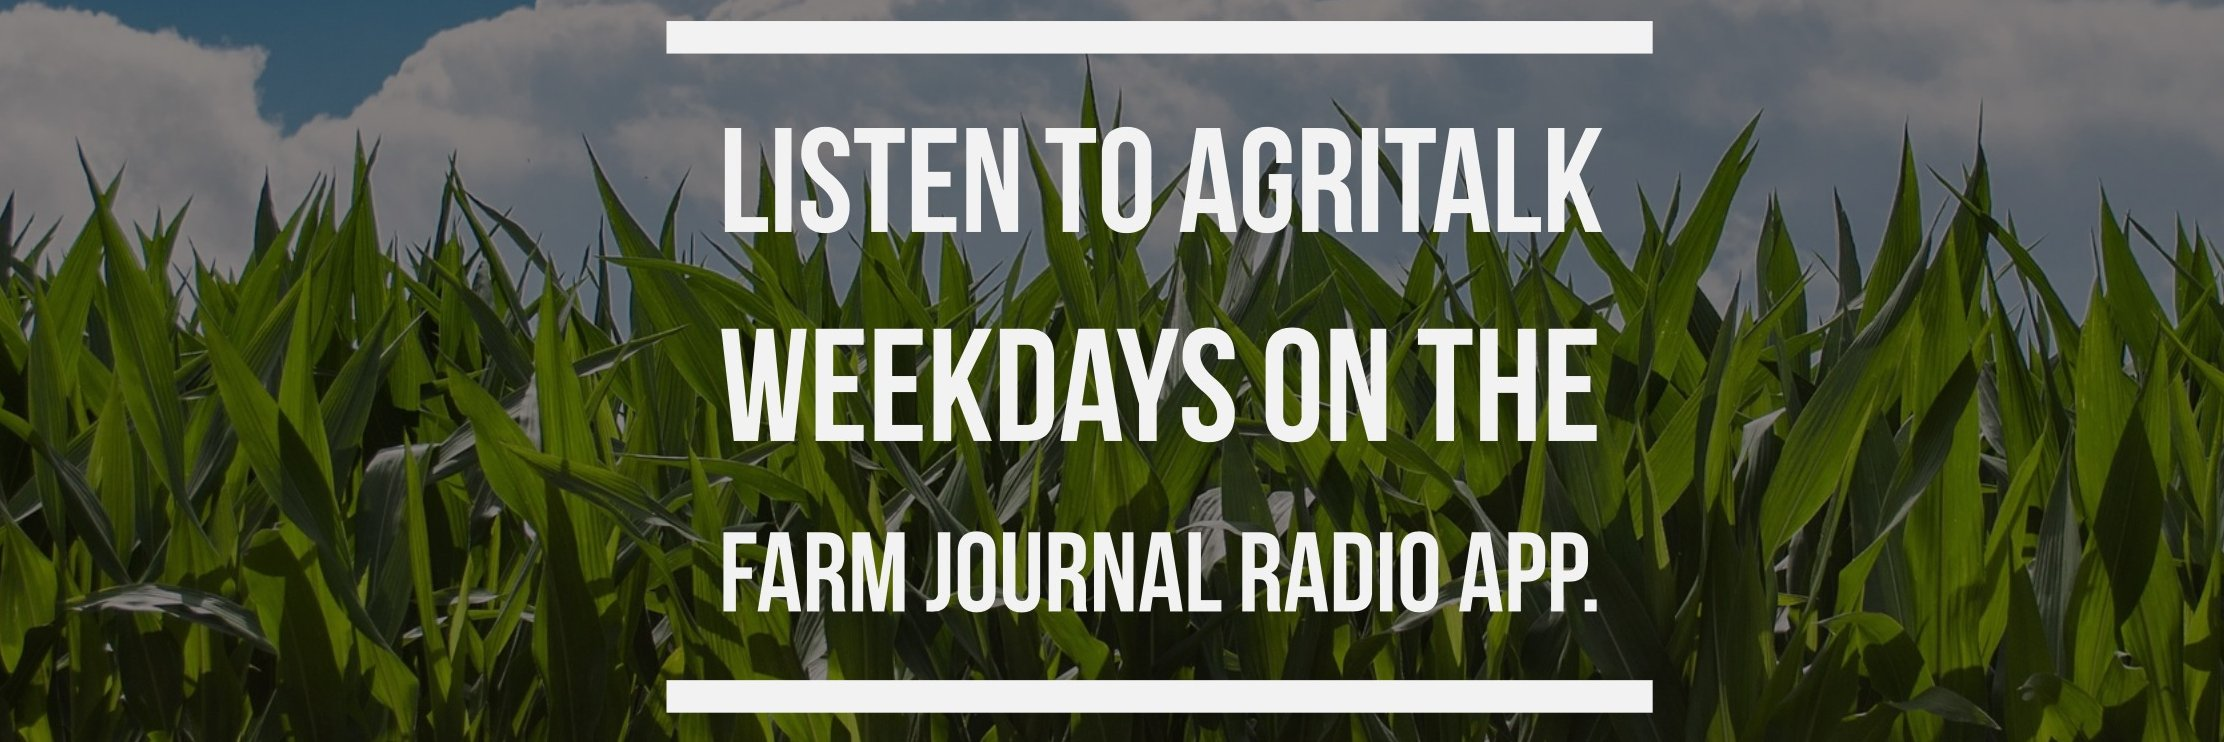 Today's 1st hour of #AgriTalk, @ChipFlory has to be away from the studio, but @DavisMichaelsen and @ClintonReports… https://t.co/3Wp52ovG60